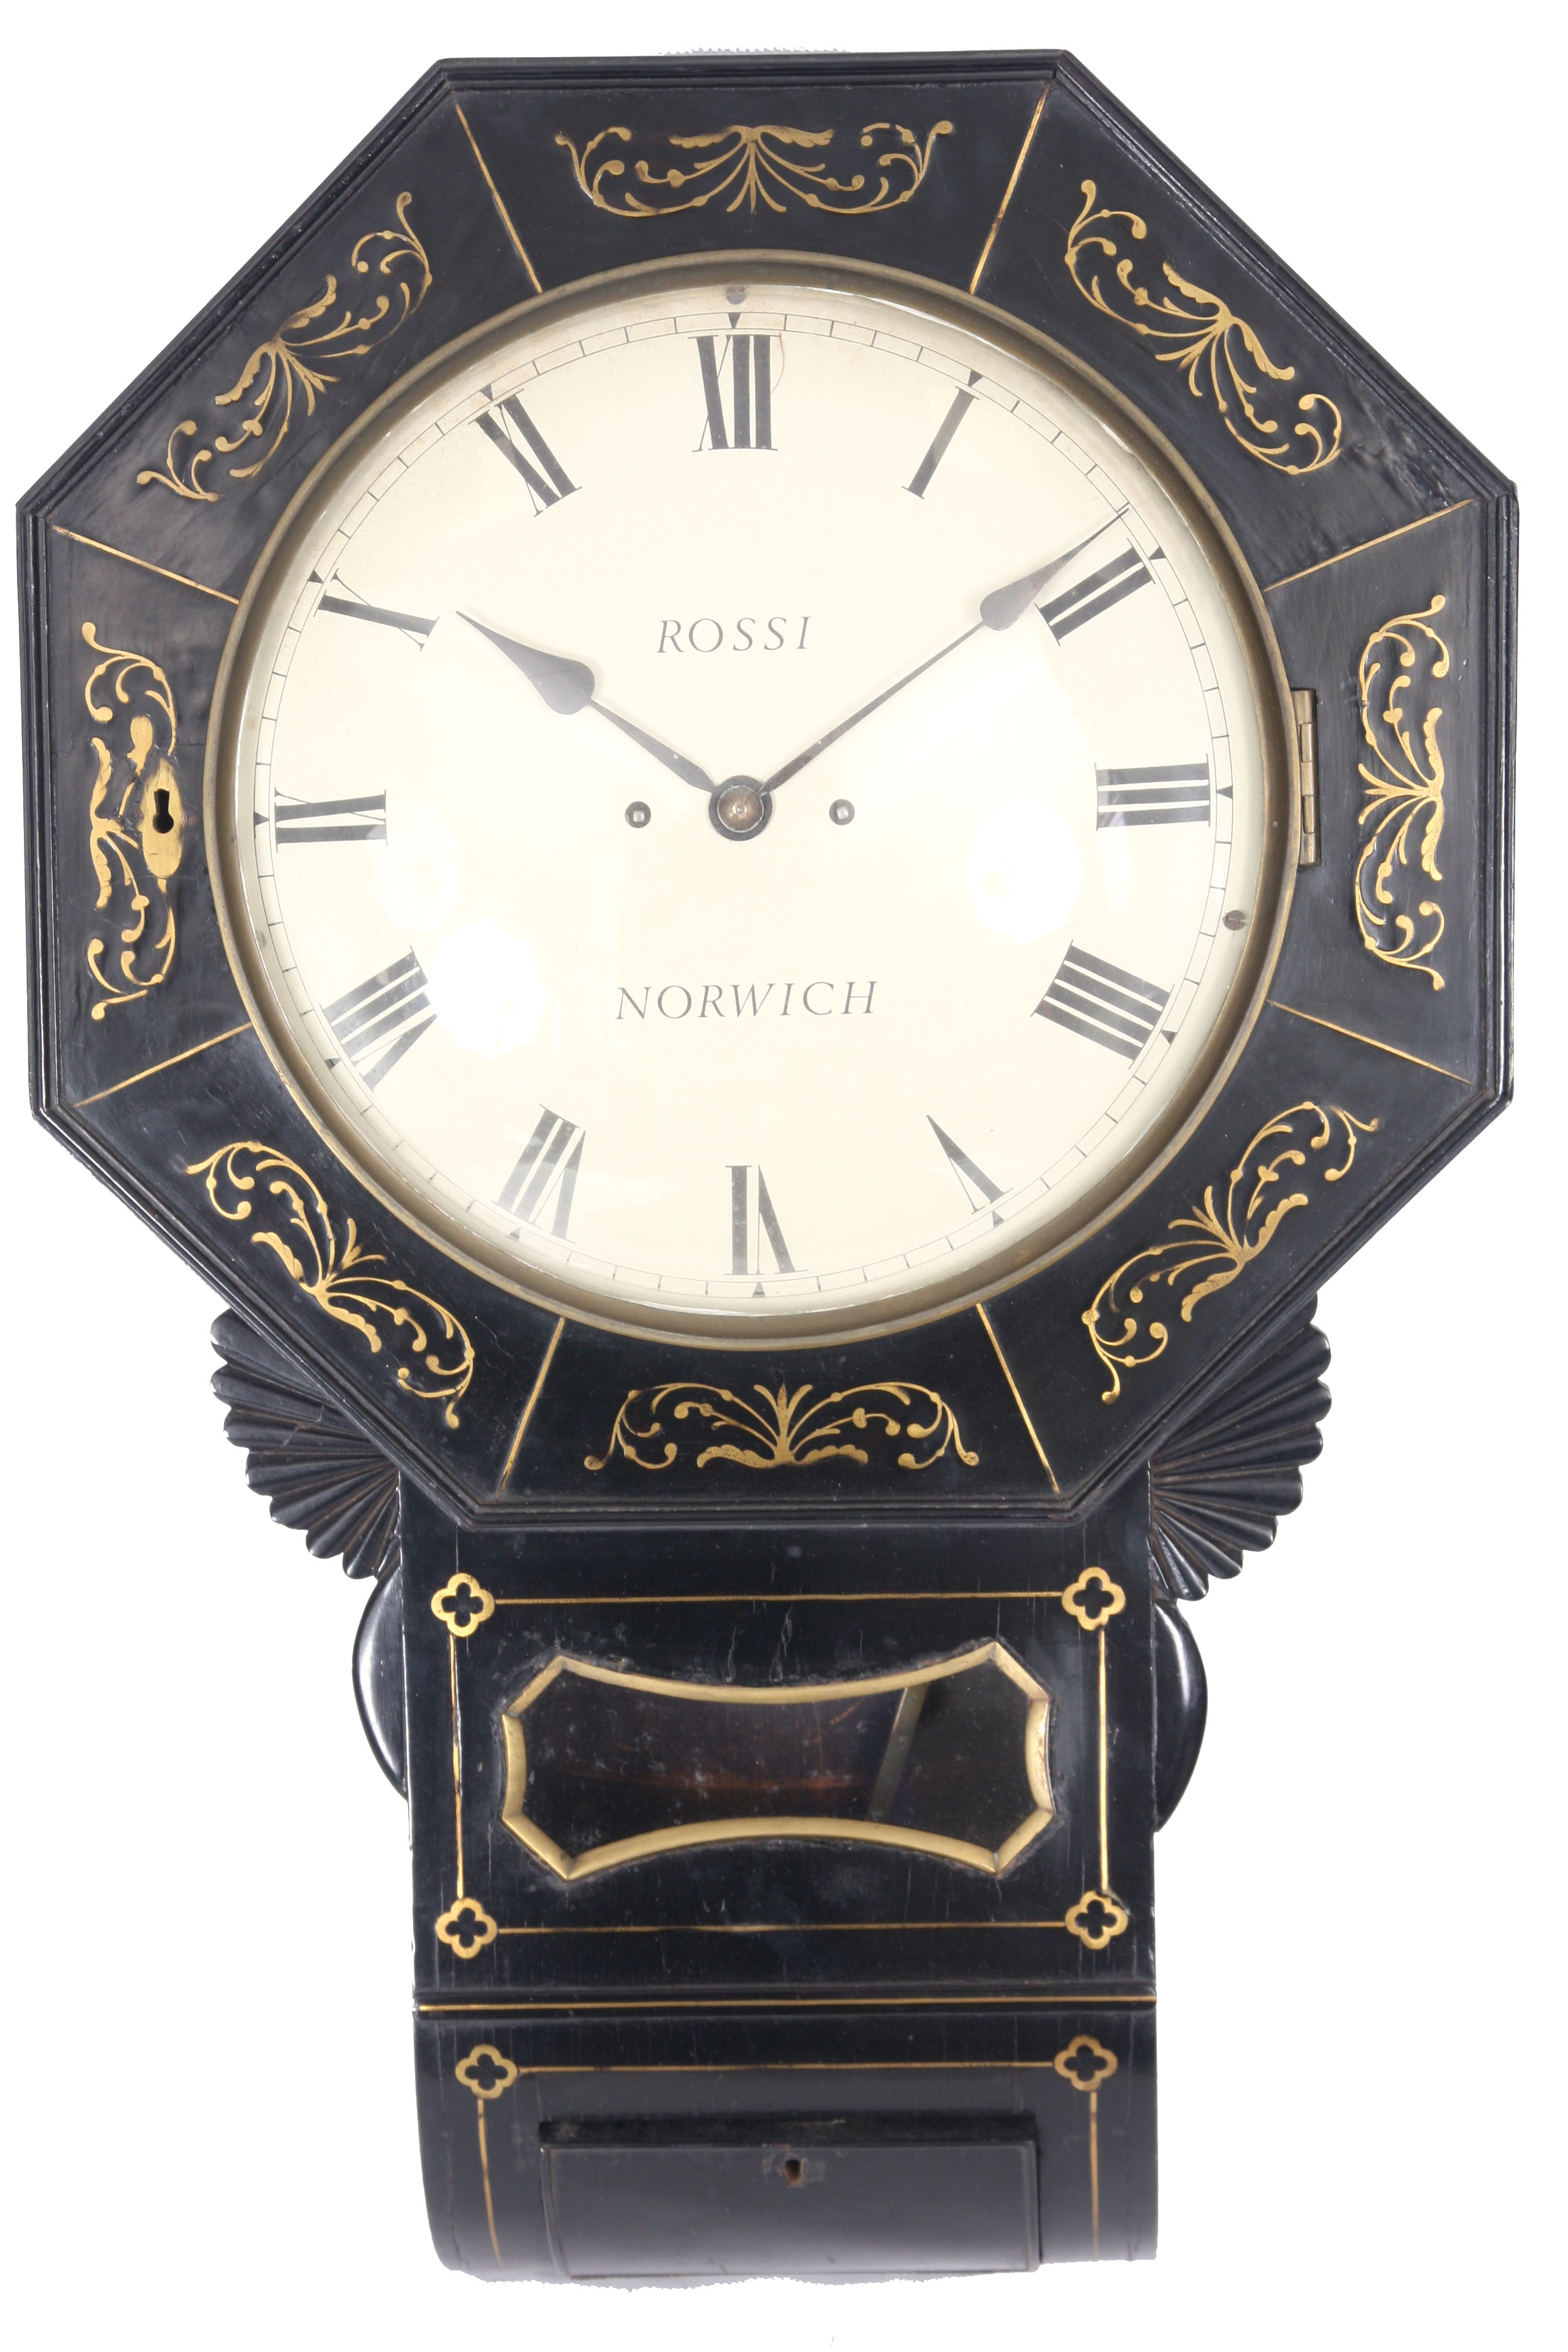 ROSSI, NORWICH A REGENCY EBONISED DOUBLE FUSEE WALL CLOCK with octagonal brass inlaid surround on